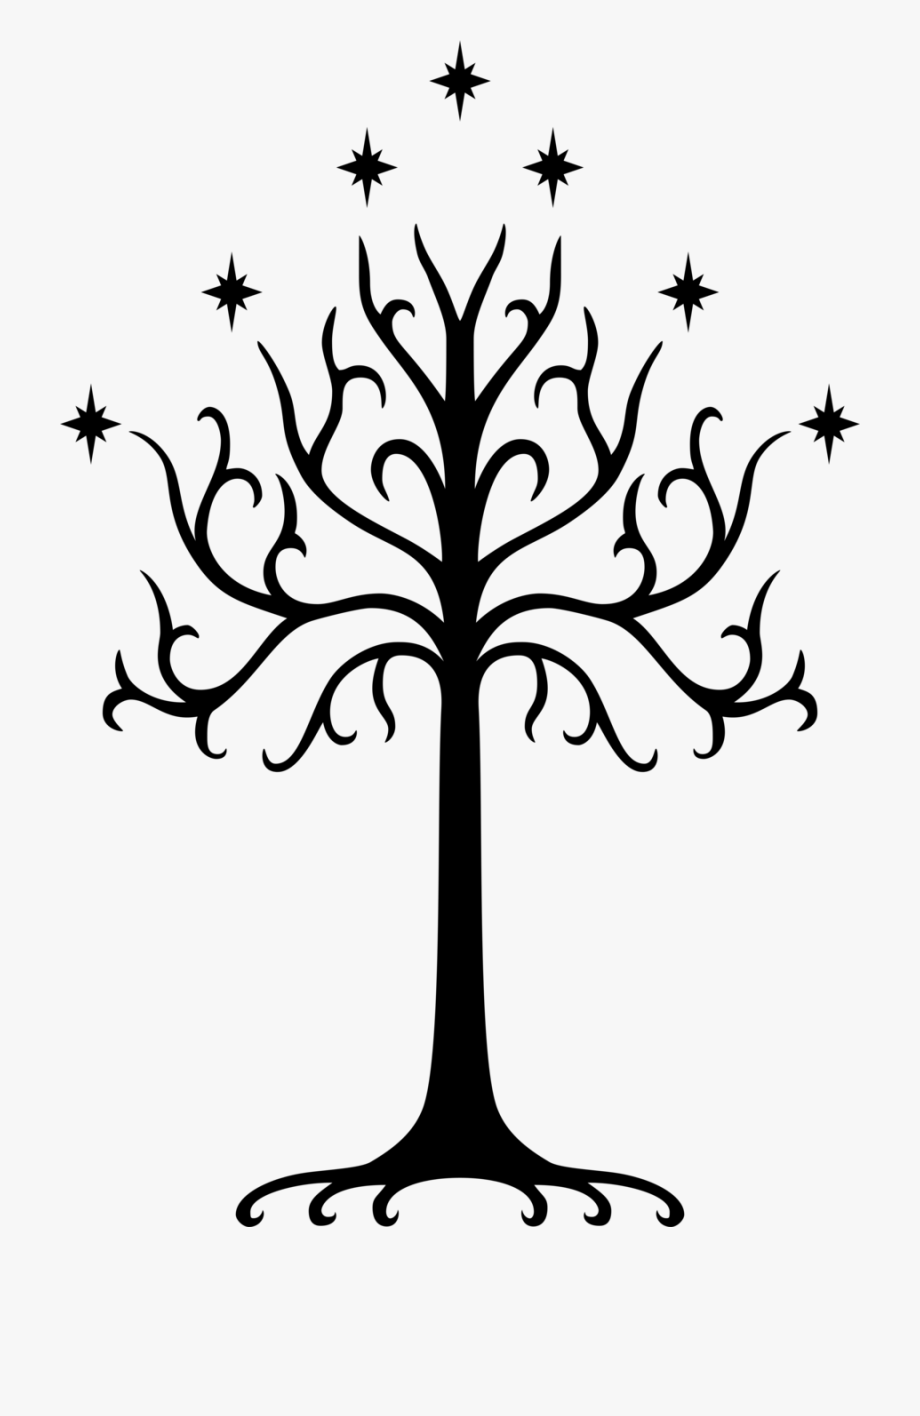 Lotr clipart picture free stock Lotr - Tree Of Gondor Logo #120945 - Free Cliparts on ... picture free stock